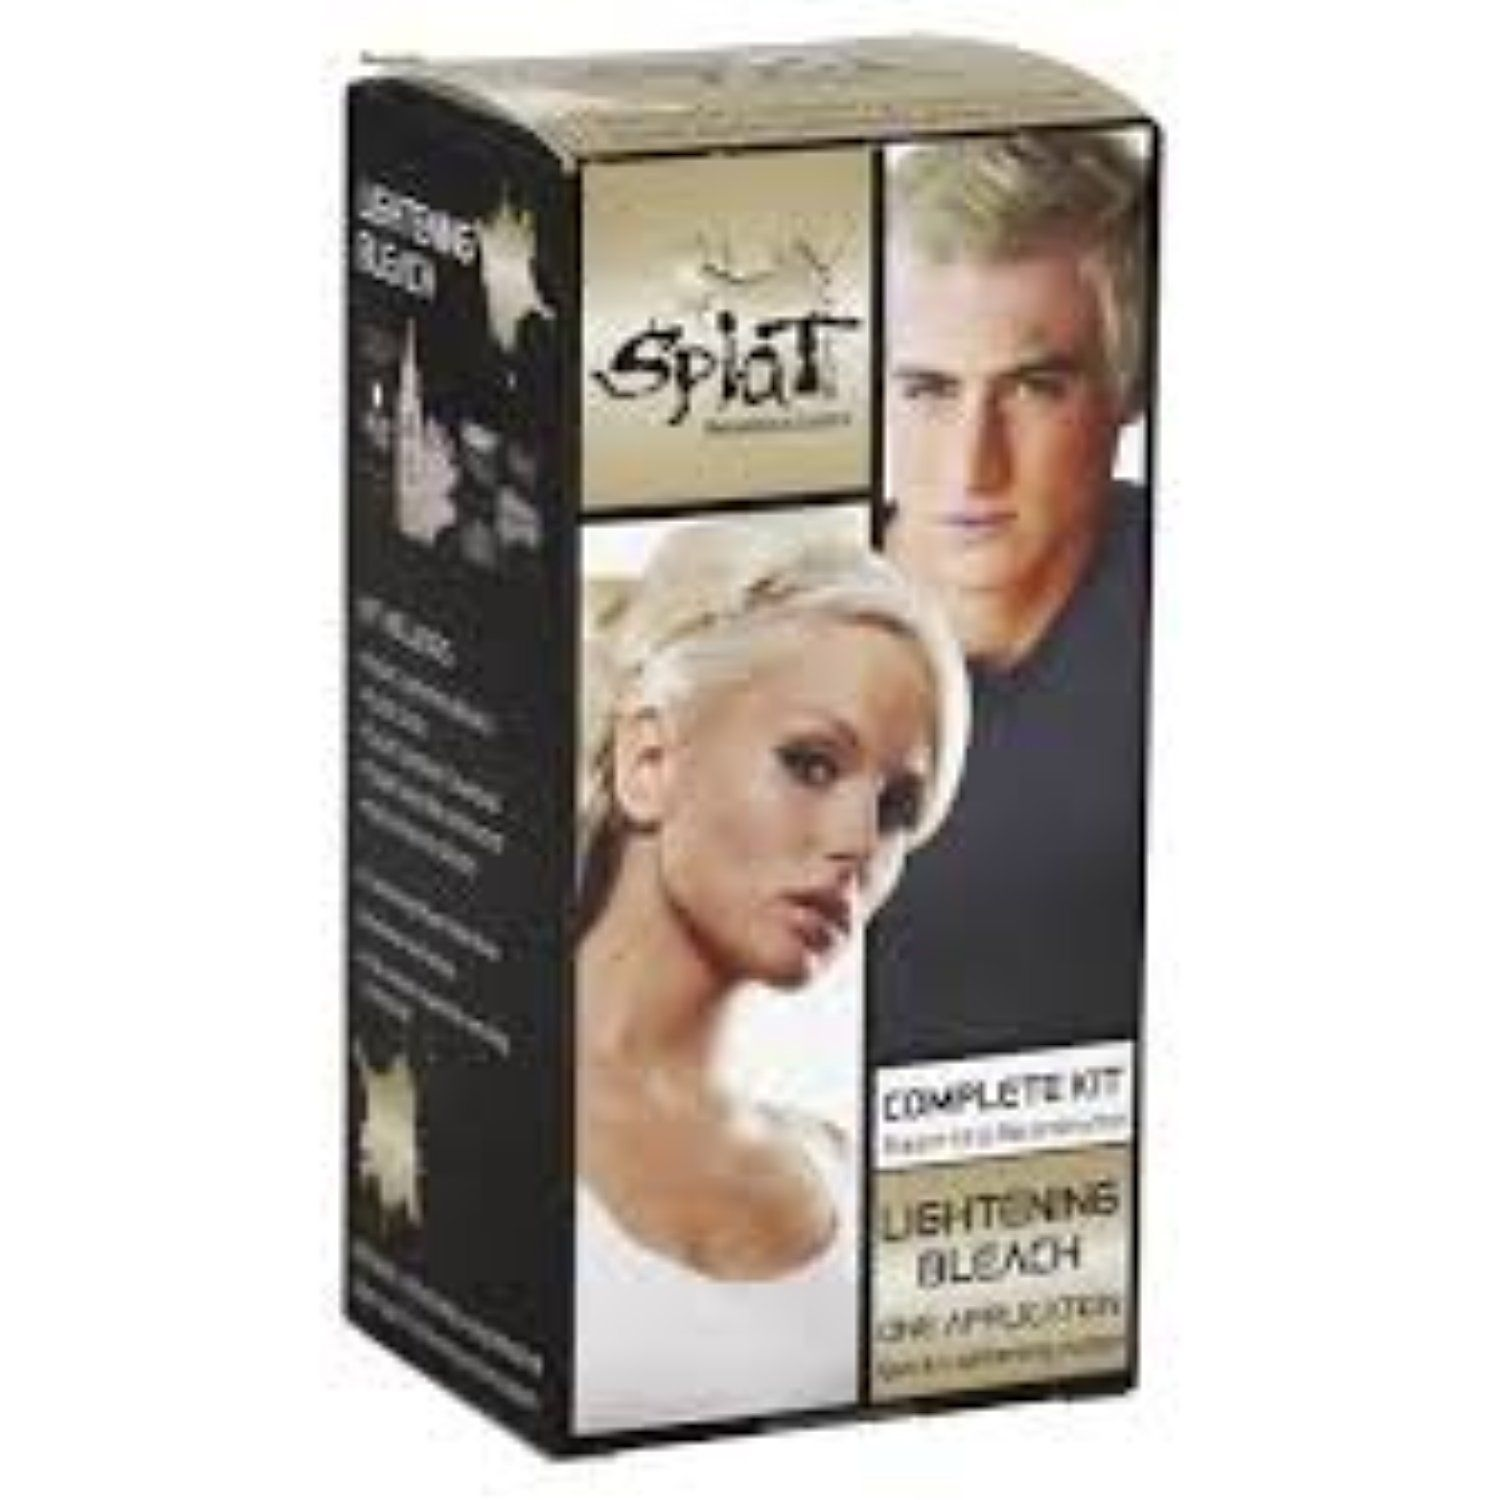 Splat Hair Color Lightening Bleach Kit Pack Of 3 Be Sure To Check Out This Awesome Product This Is An Aff Splat Hair Color Hair Color Bleach Hair Color